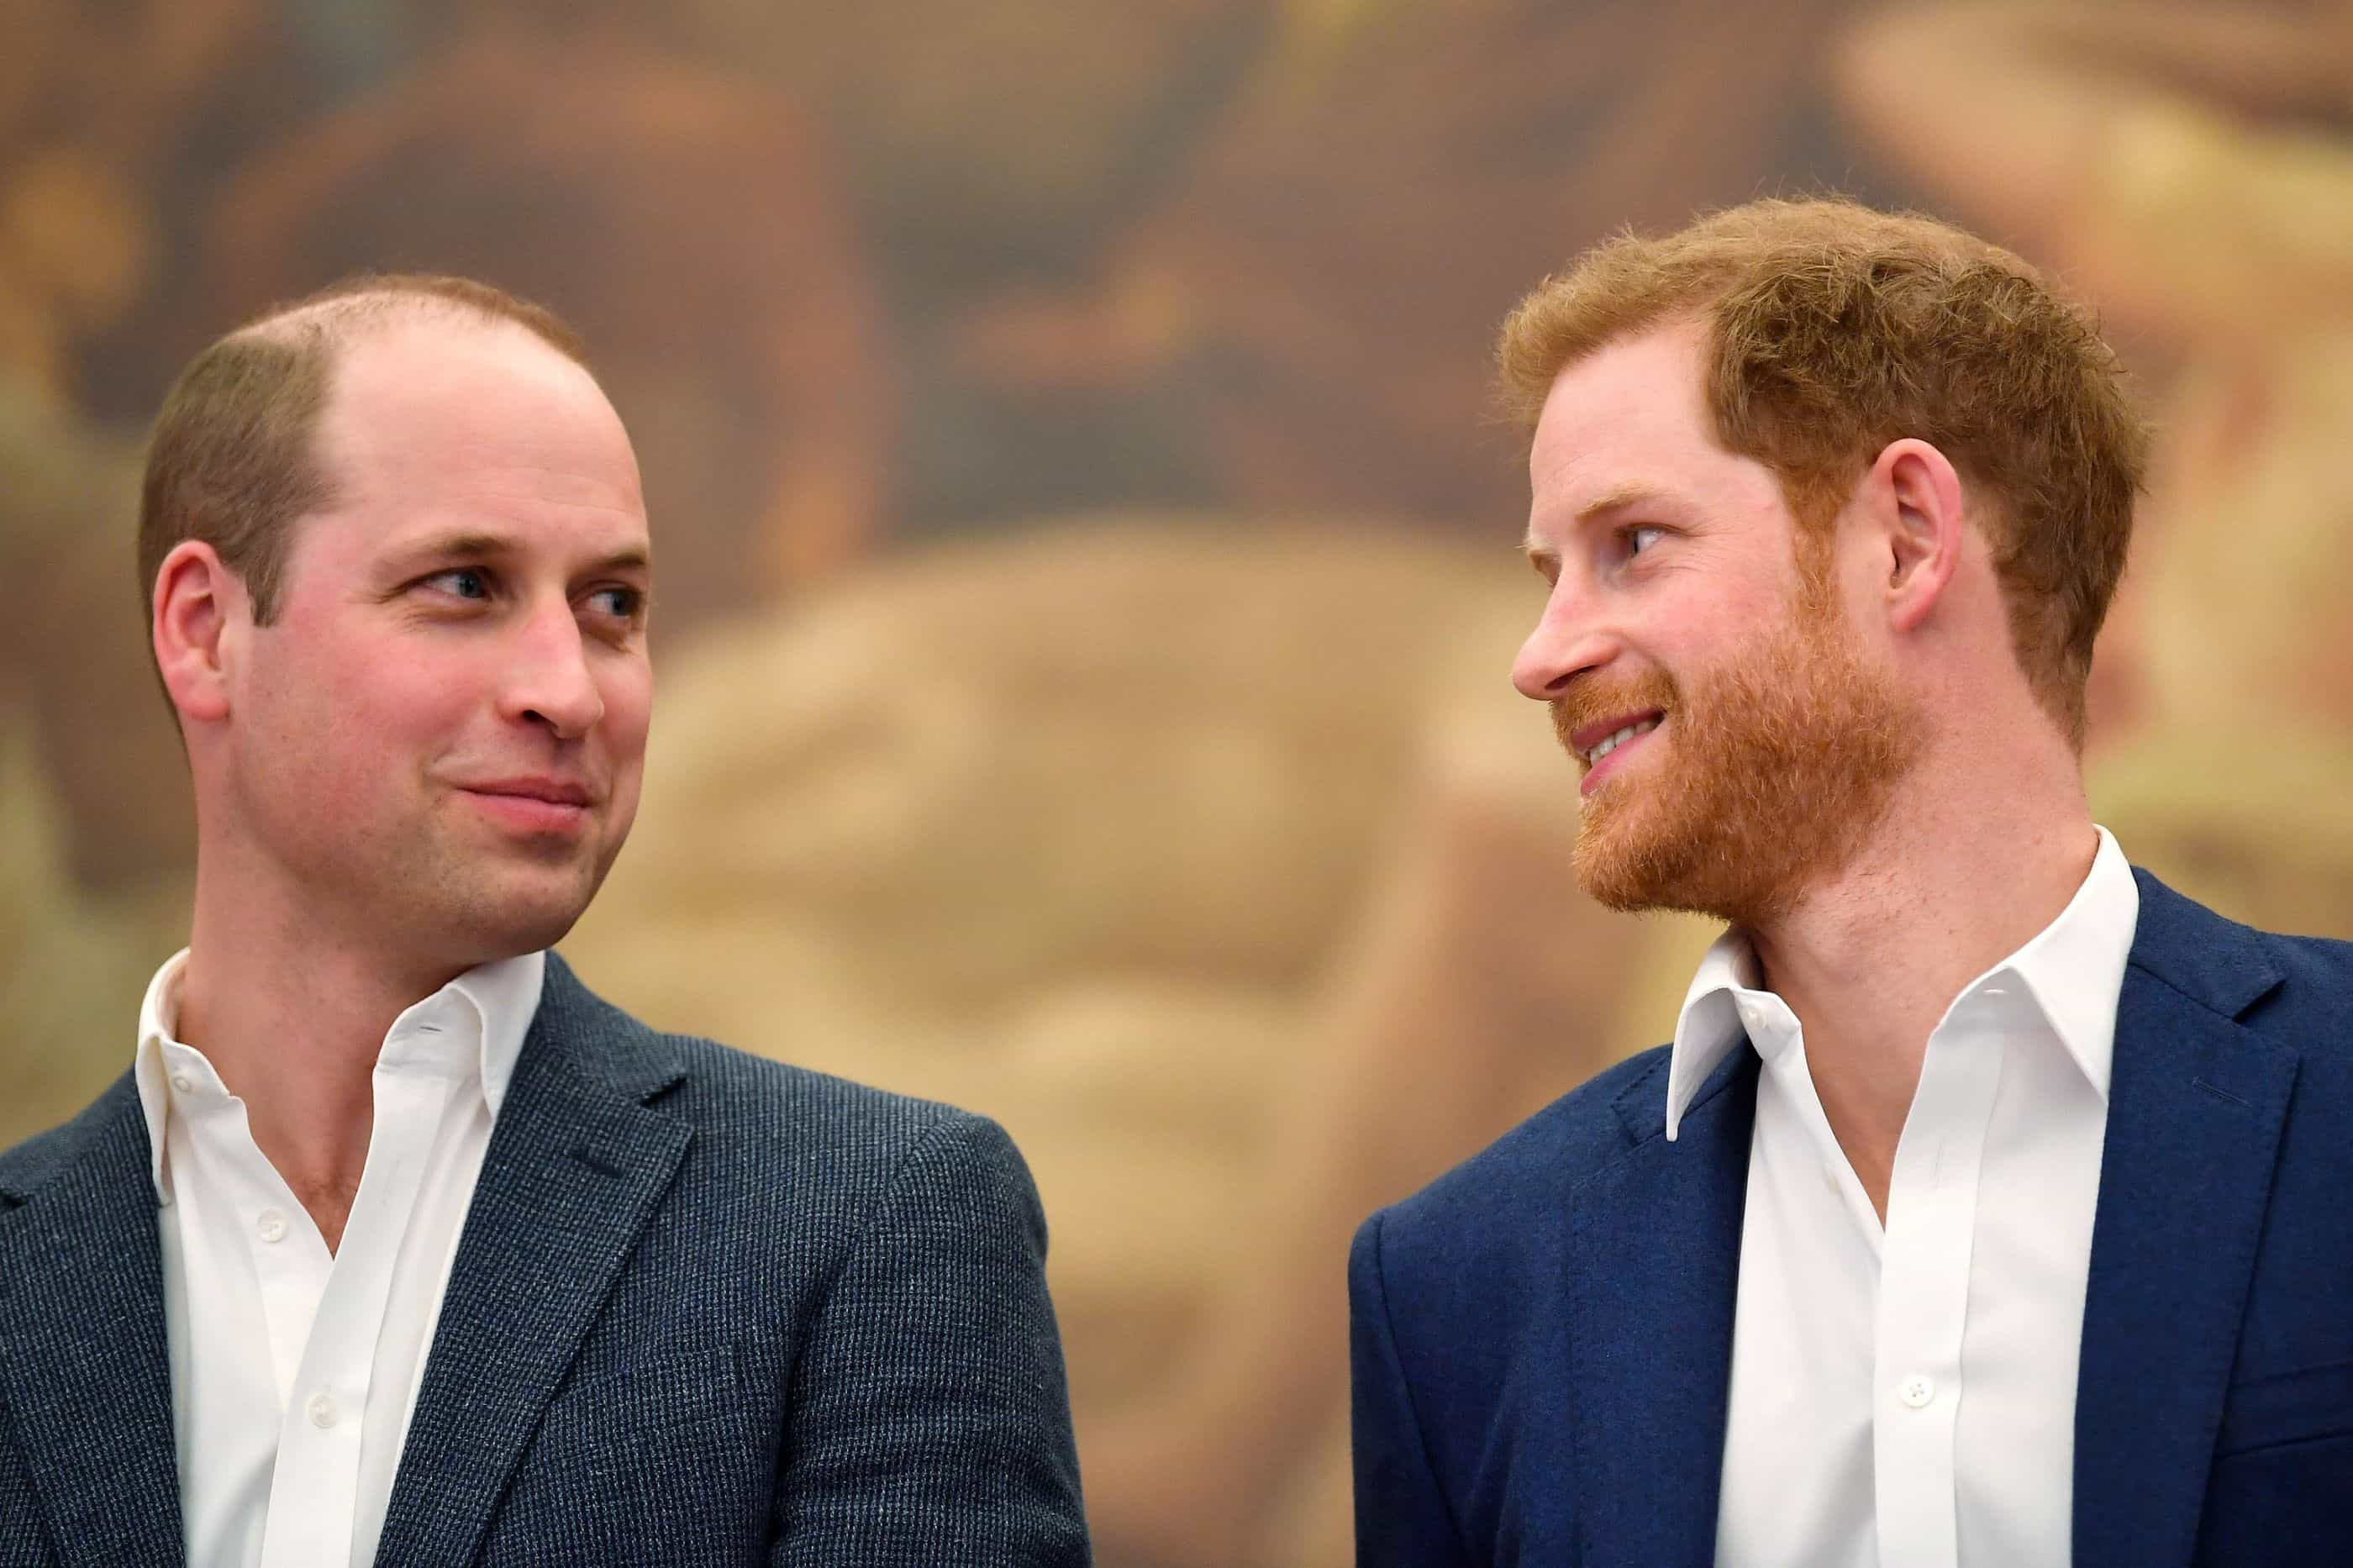 Príncipes William e Harry planeiam dividir o Palácio de Kensington